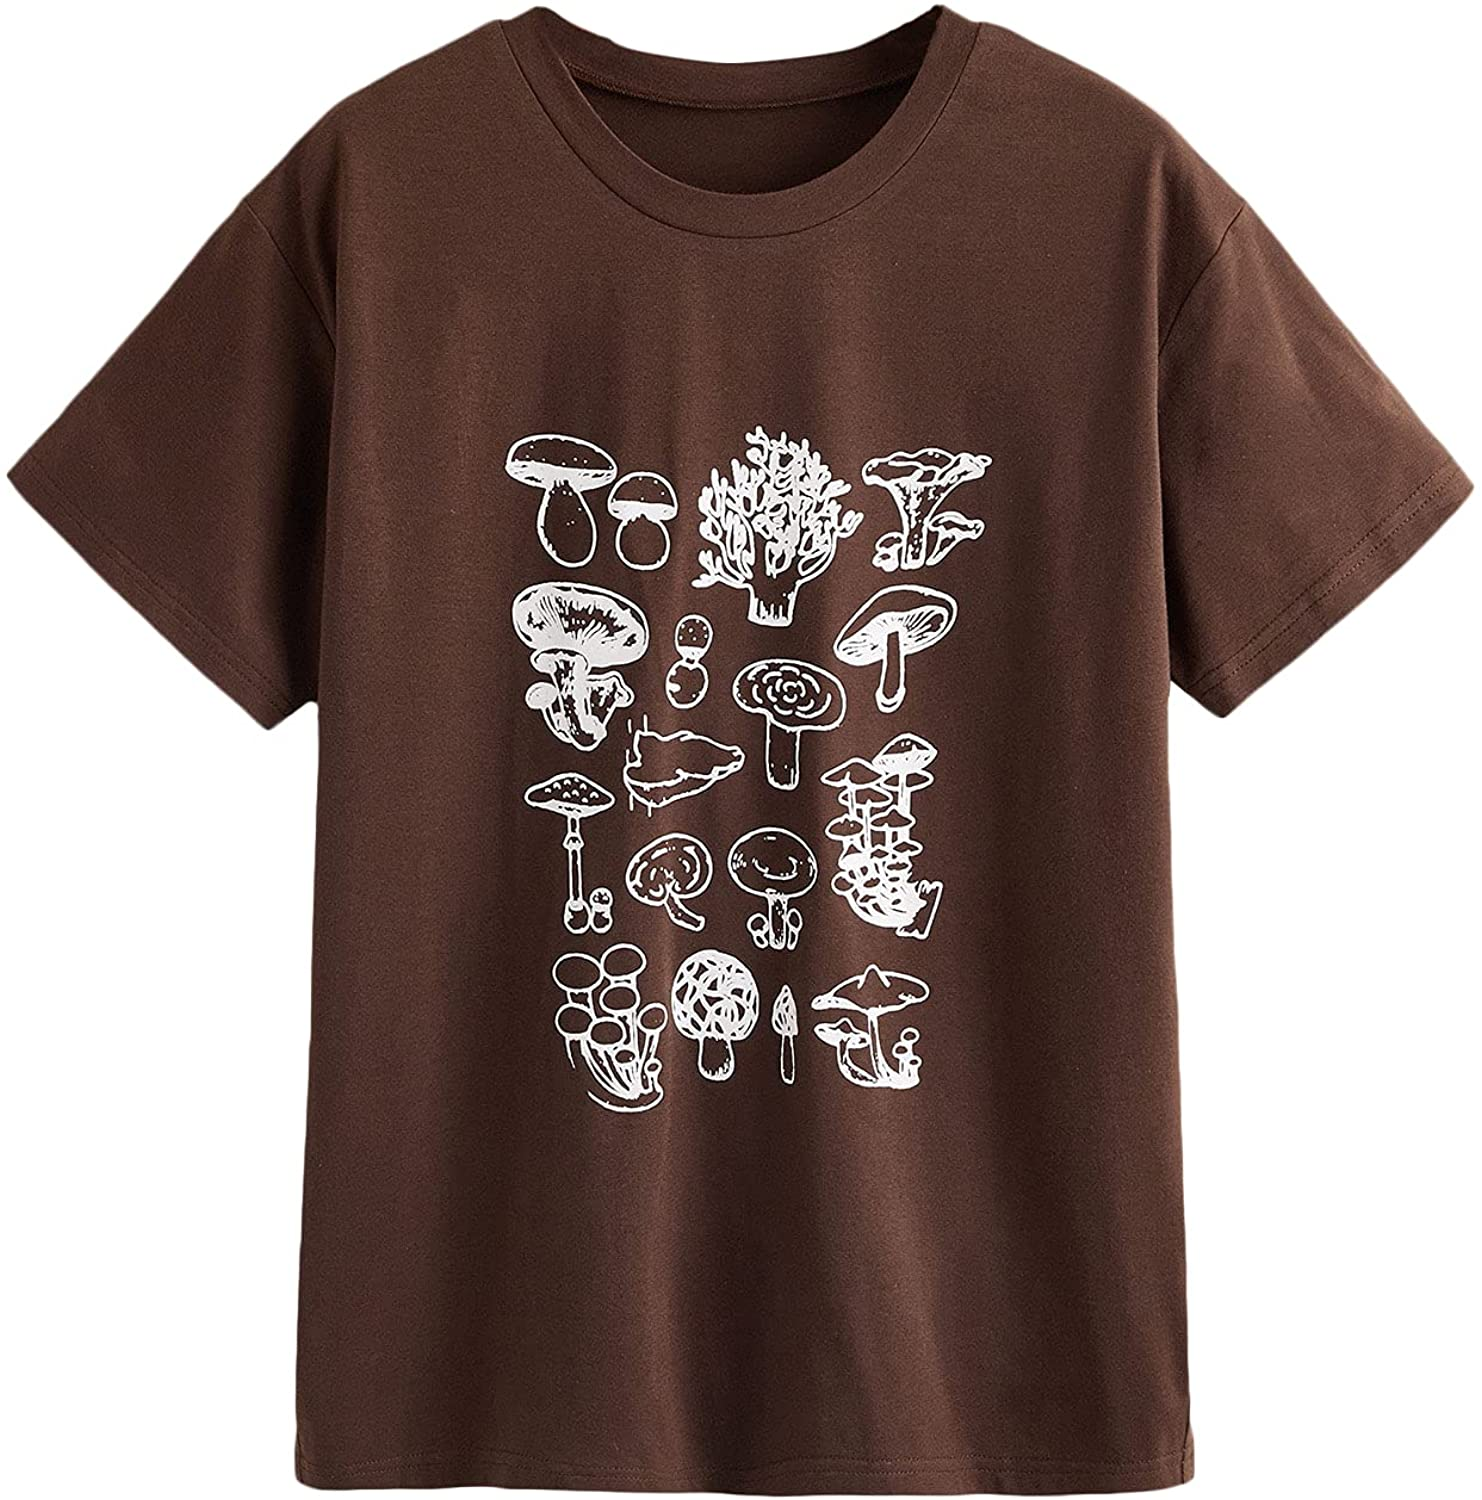 SOLY HUX Women's Graphic Letter Print T Shirt Short Sleeve Tee Top